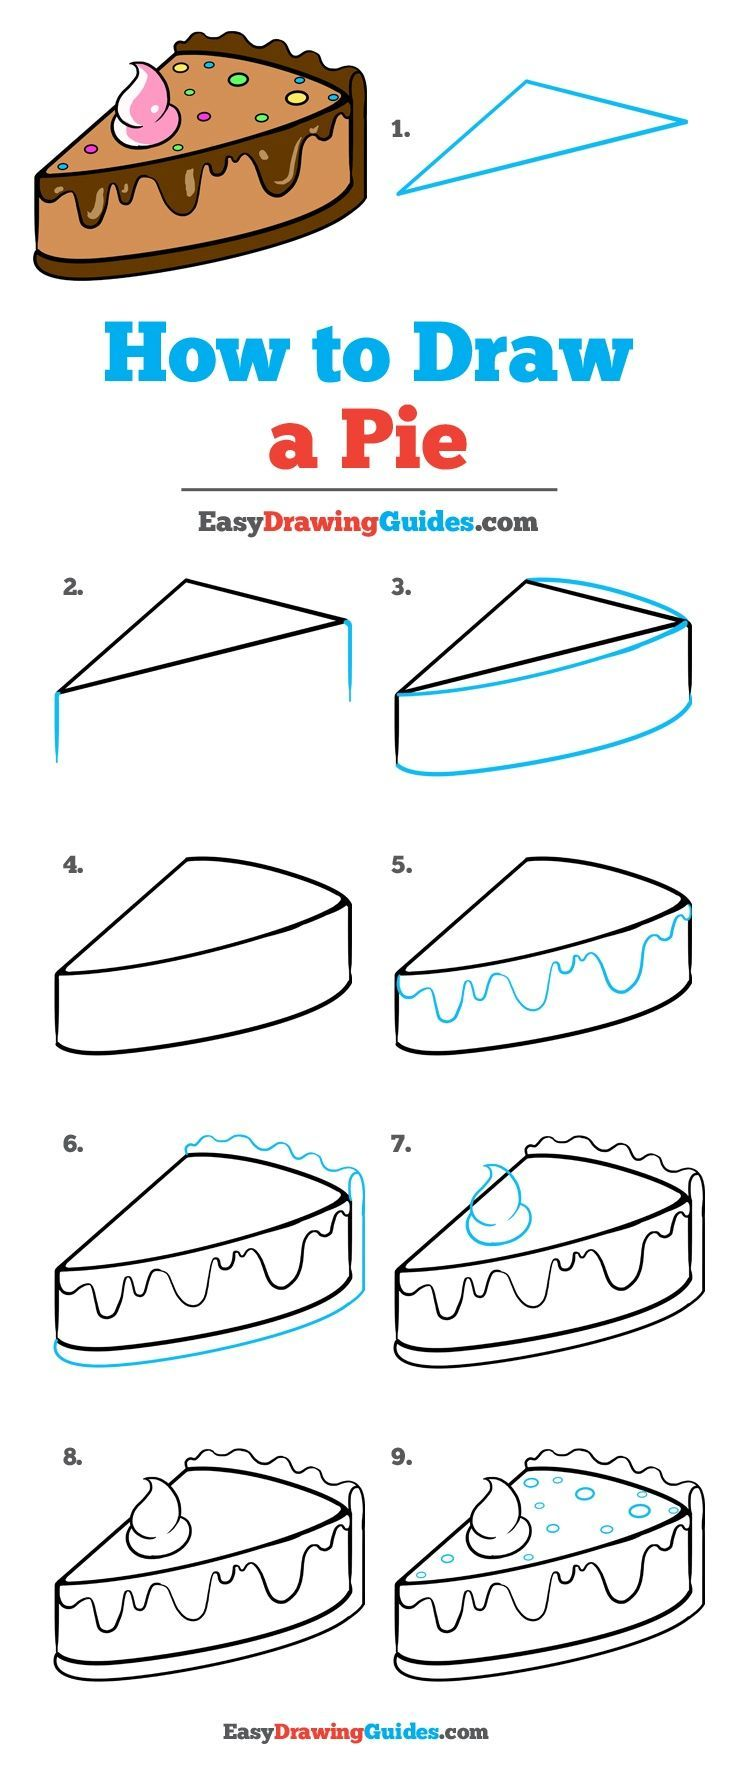 How to Draw a Tasty Pie - Really Easy Drawing Tutorial